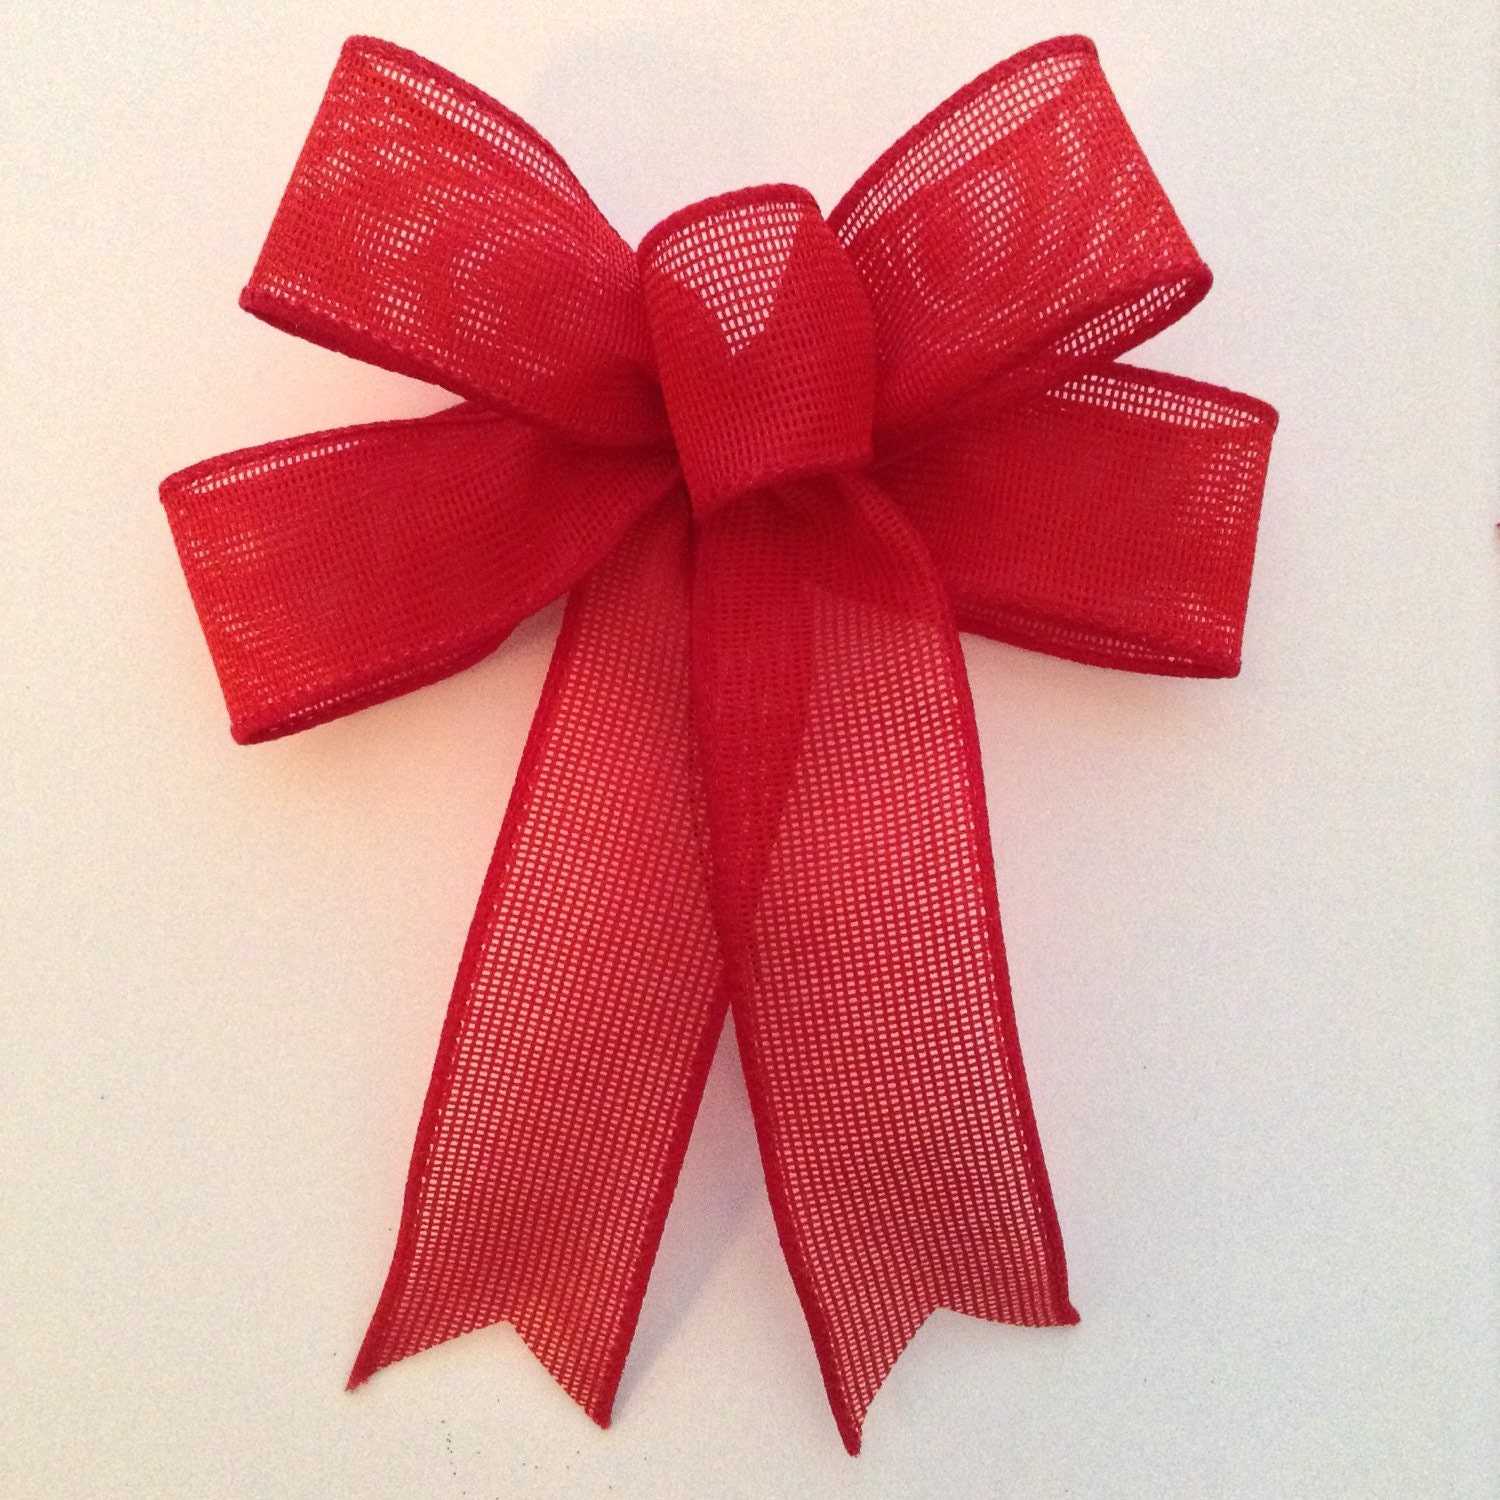 burlap red bows christmas decorative bows small red burlap. Black Bedroom Furniture Sets. Home Design Ideas